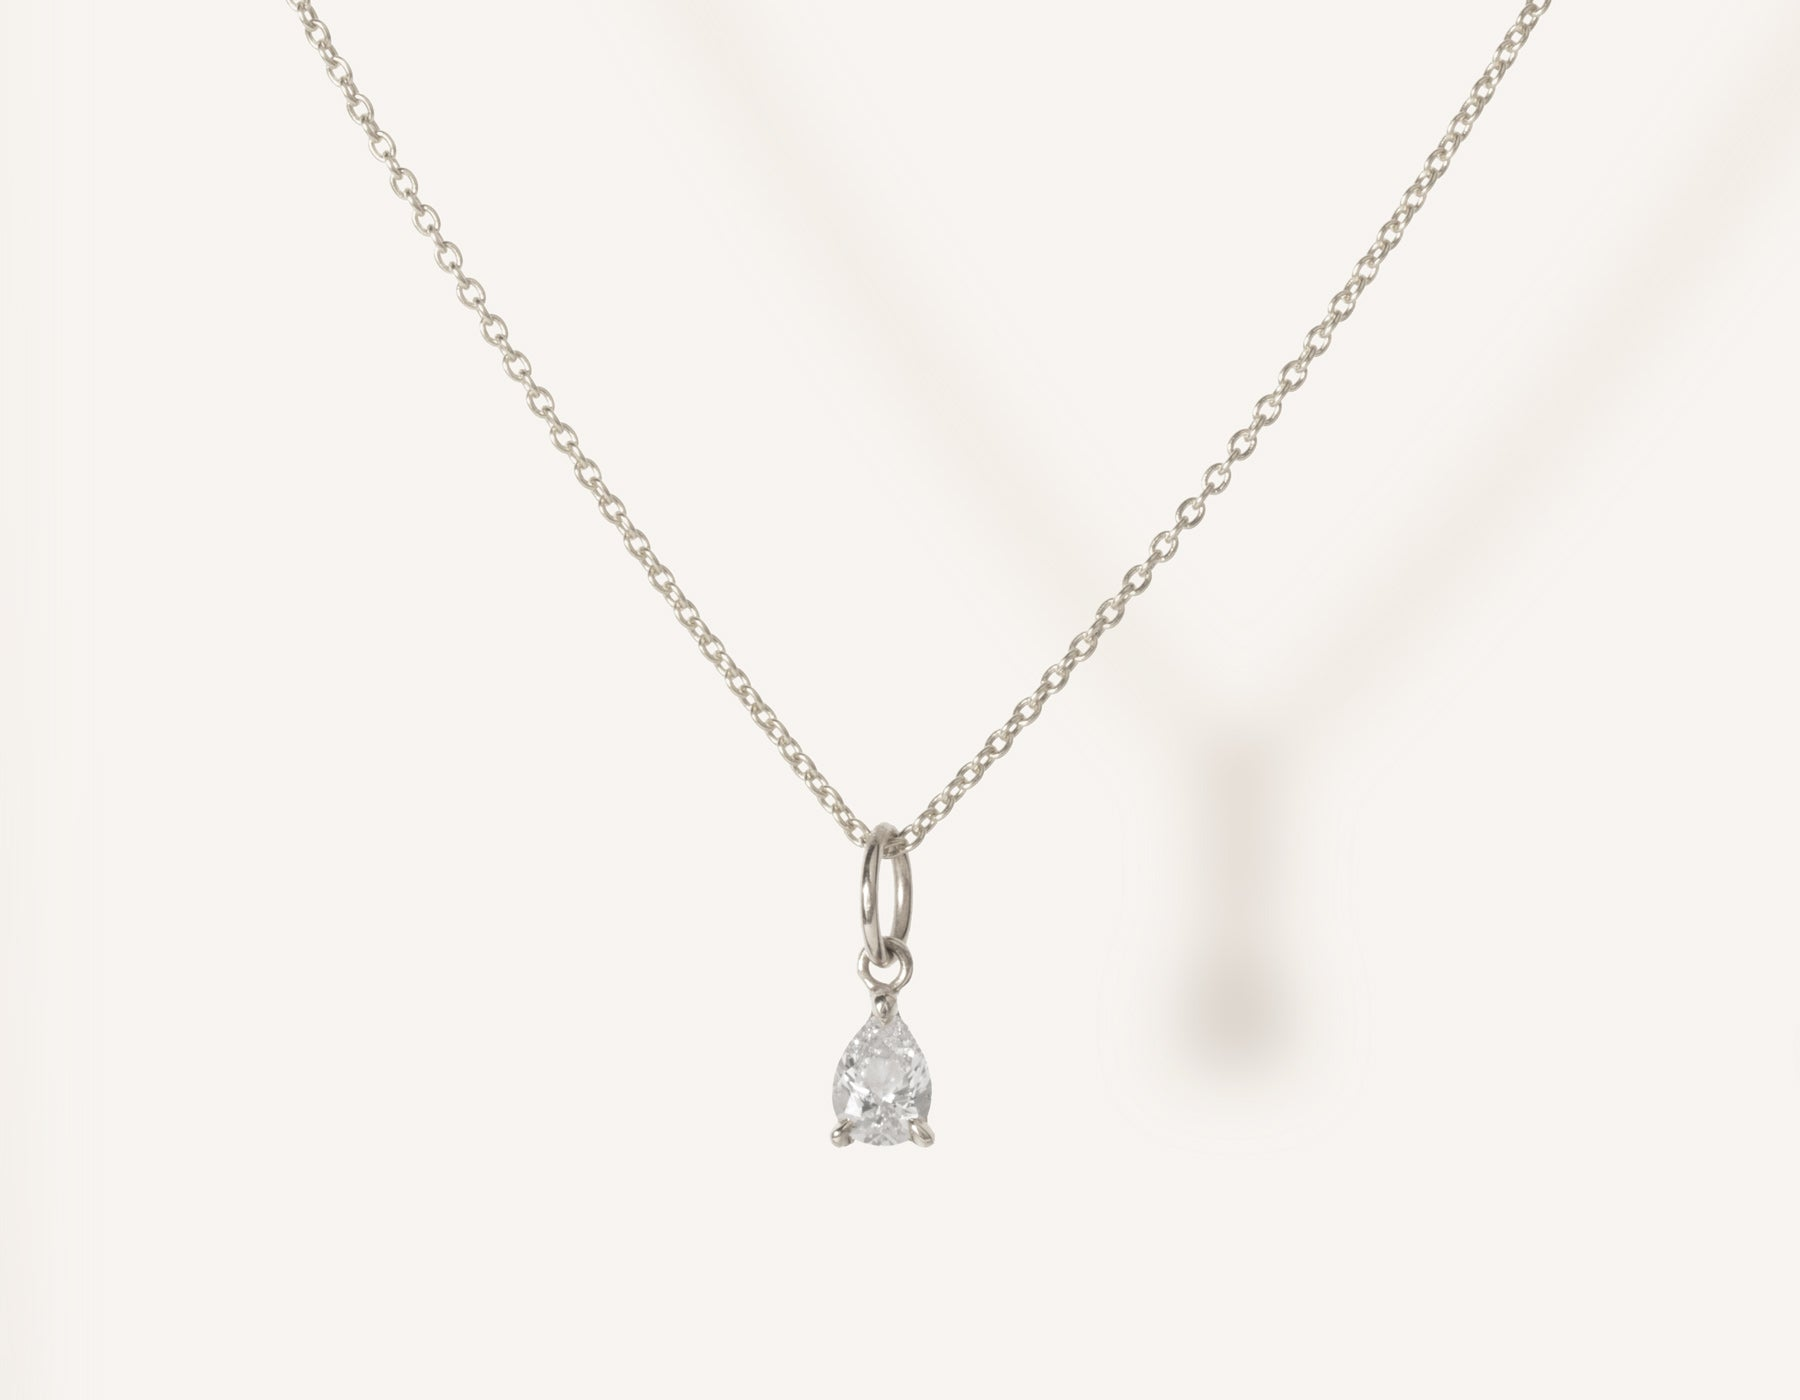 vrai & oro 14k solid gold dainty Pear Diamond Pendant Necklace on minimalist oval link chain, 14K White Gold